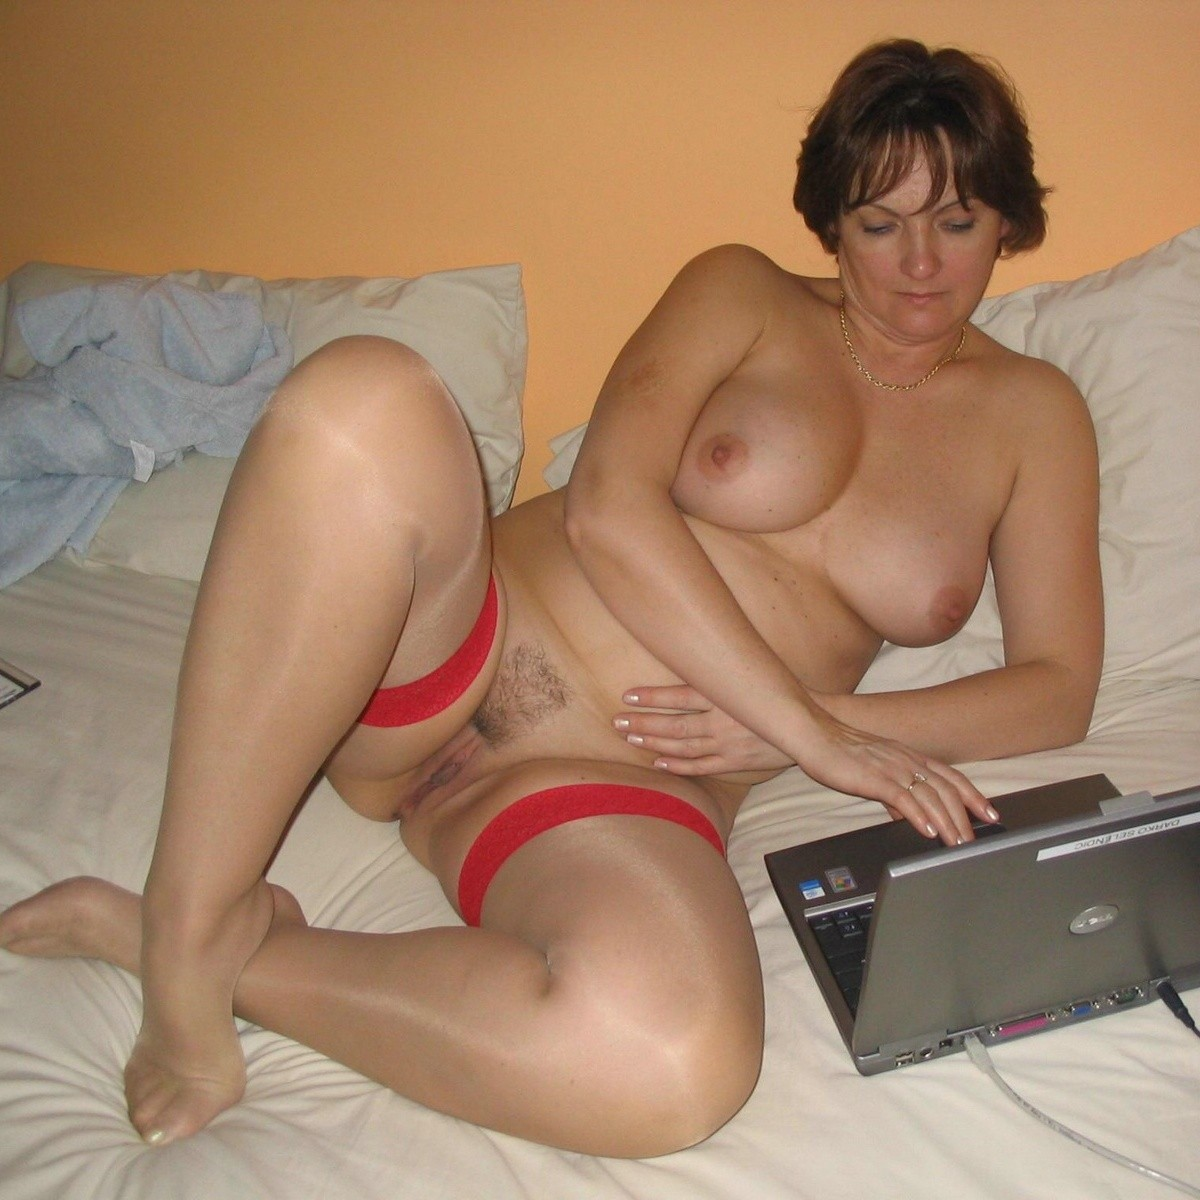 Dirty pictures of my wife